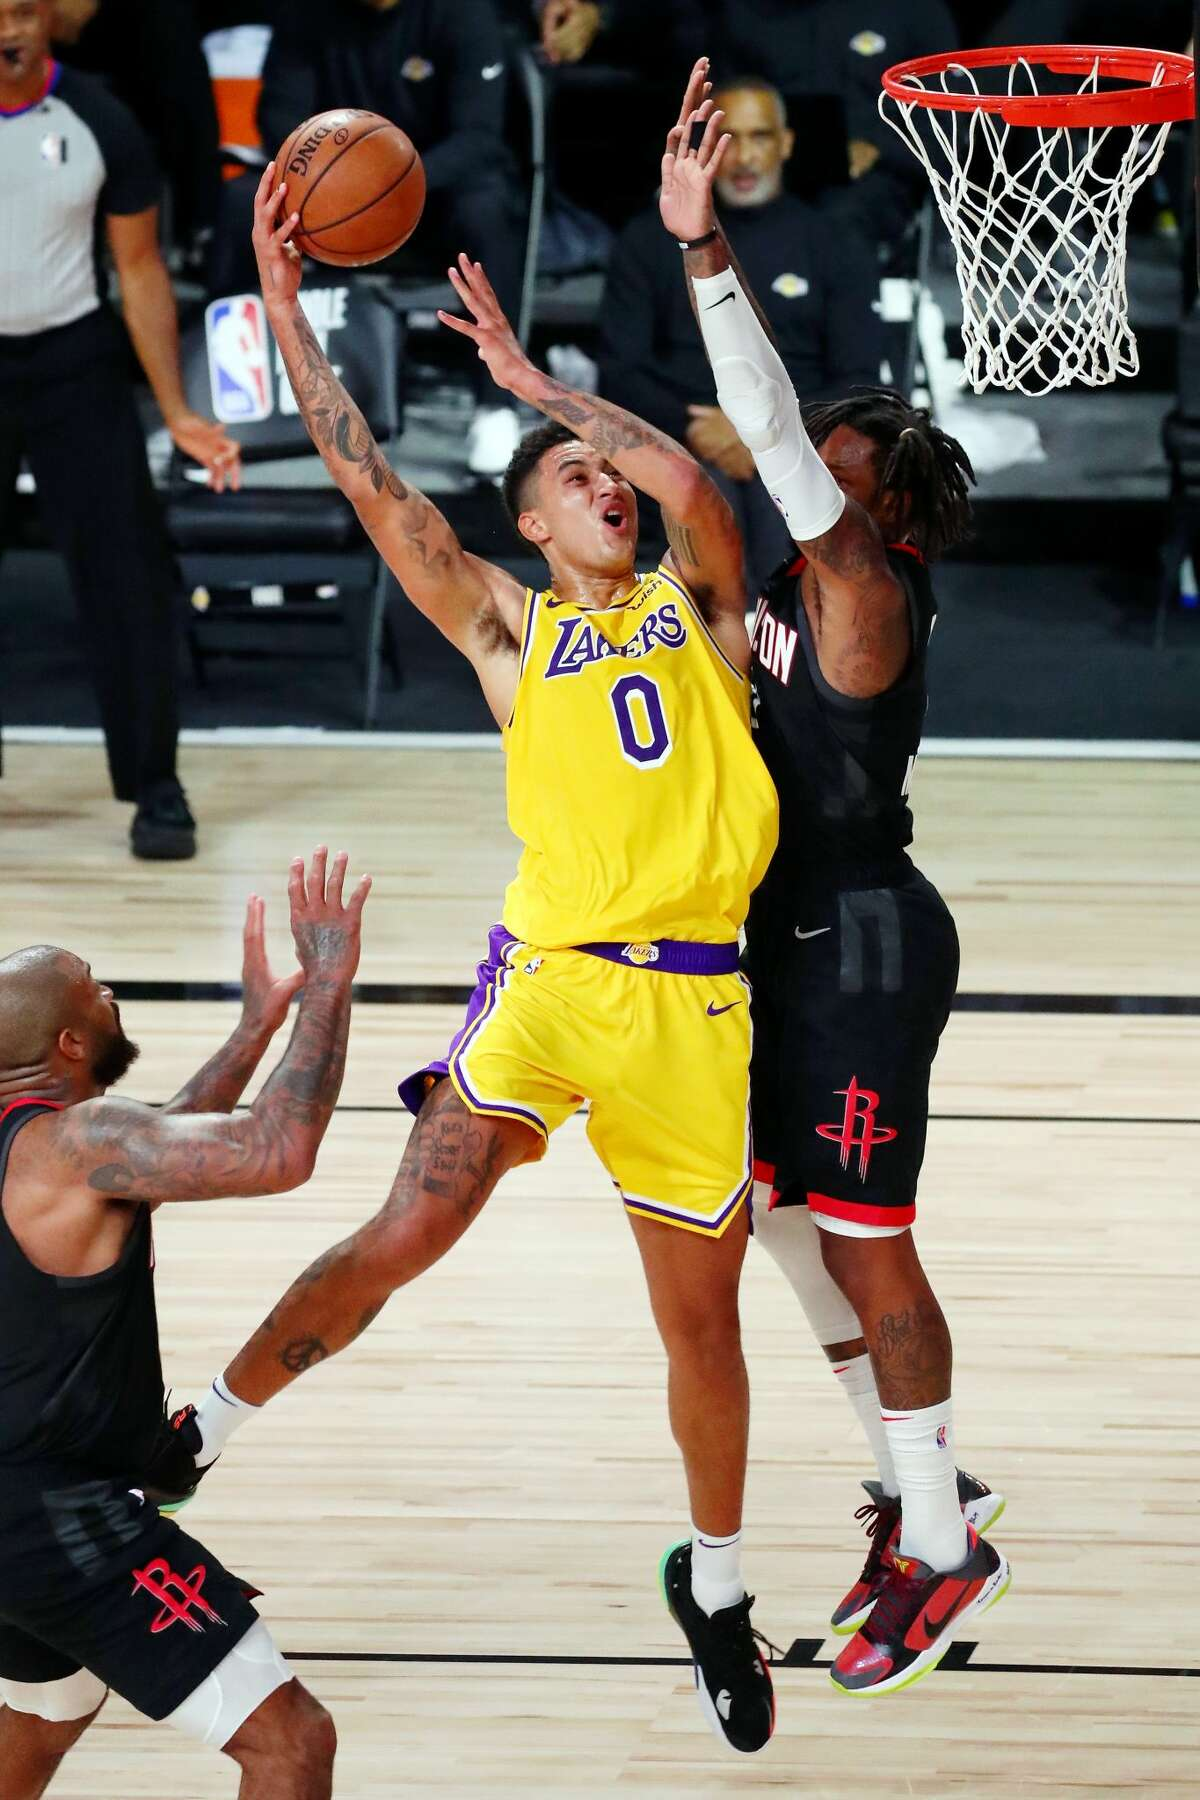 LAKE BUENA VISTA, FLORIDA - AUGUST 06: Ben McLemore #16 of the Houston Rockets fouls Kyle Kuzma #0 of the Los Angeles Lakers, who scored on the play in the first half at The Arena at ESPN Wide World Of Sports Complex on August 6, 2020 in Lake Buena Vista, Florida. NOTE TO USER: User expressly acknowledges and agrees that, by downloading and or using this photograph, User is consenting to the terms and conditions of the Getty Images License Agreement. (Photo by Kim Klement-Pool/Getty Images)